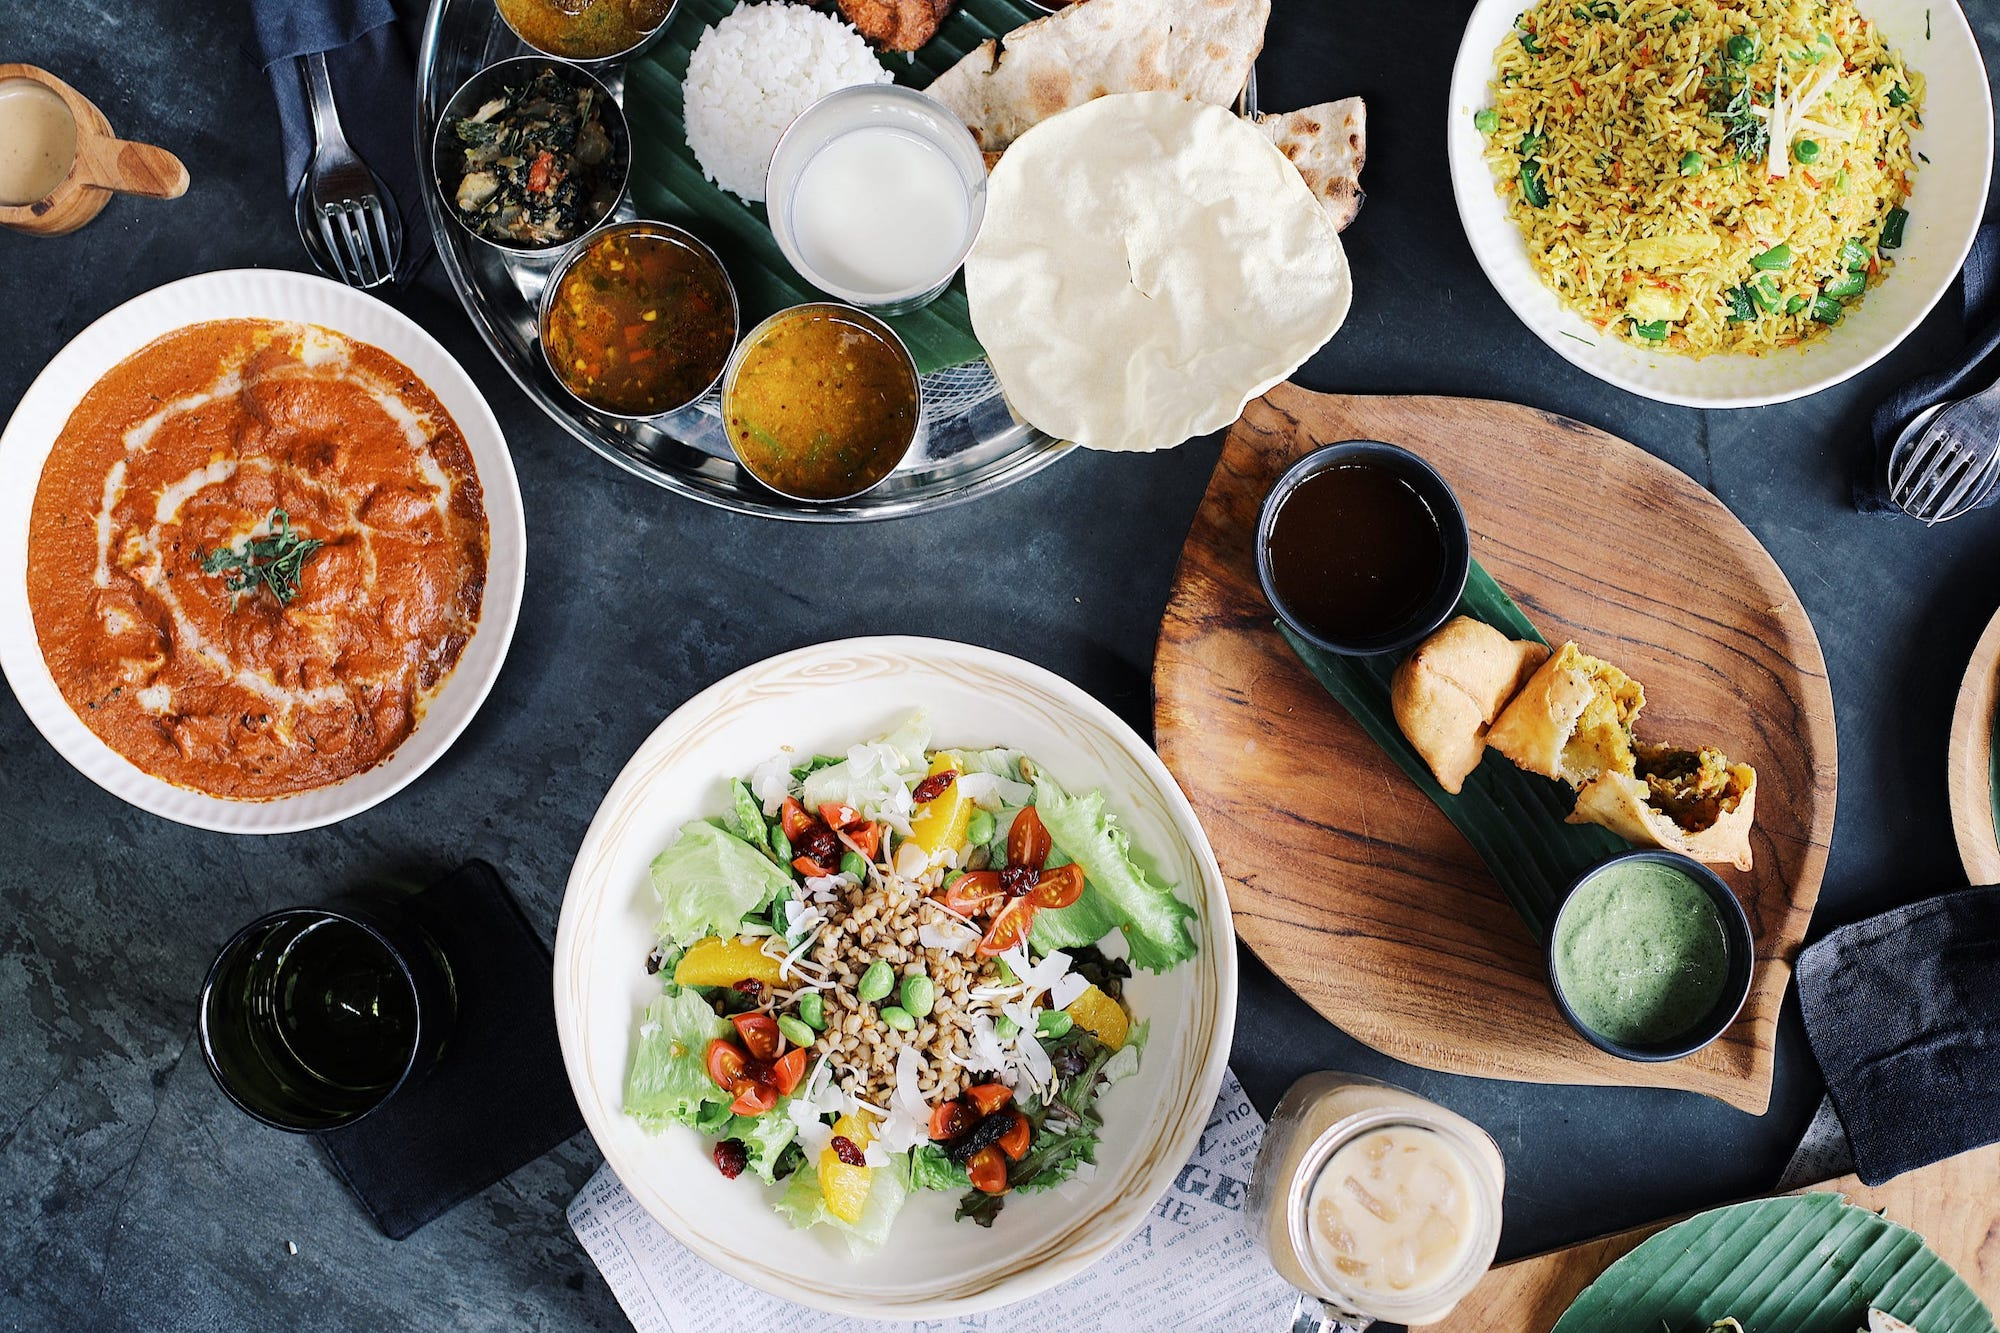 Foodie's Guide to Finding Great Indian Cuisine in Bali